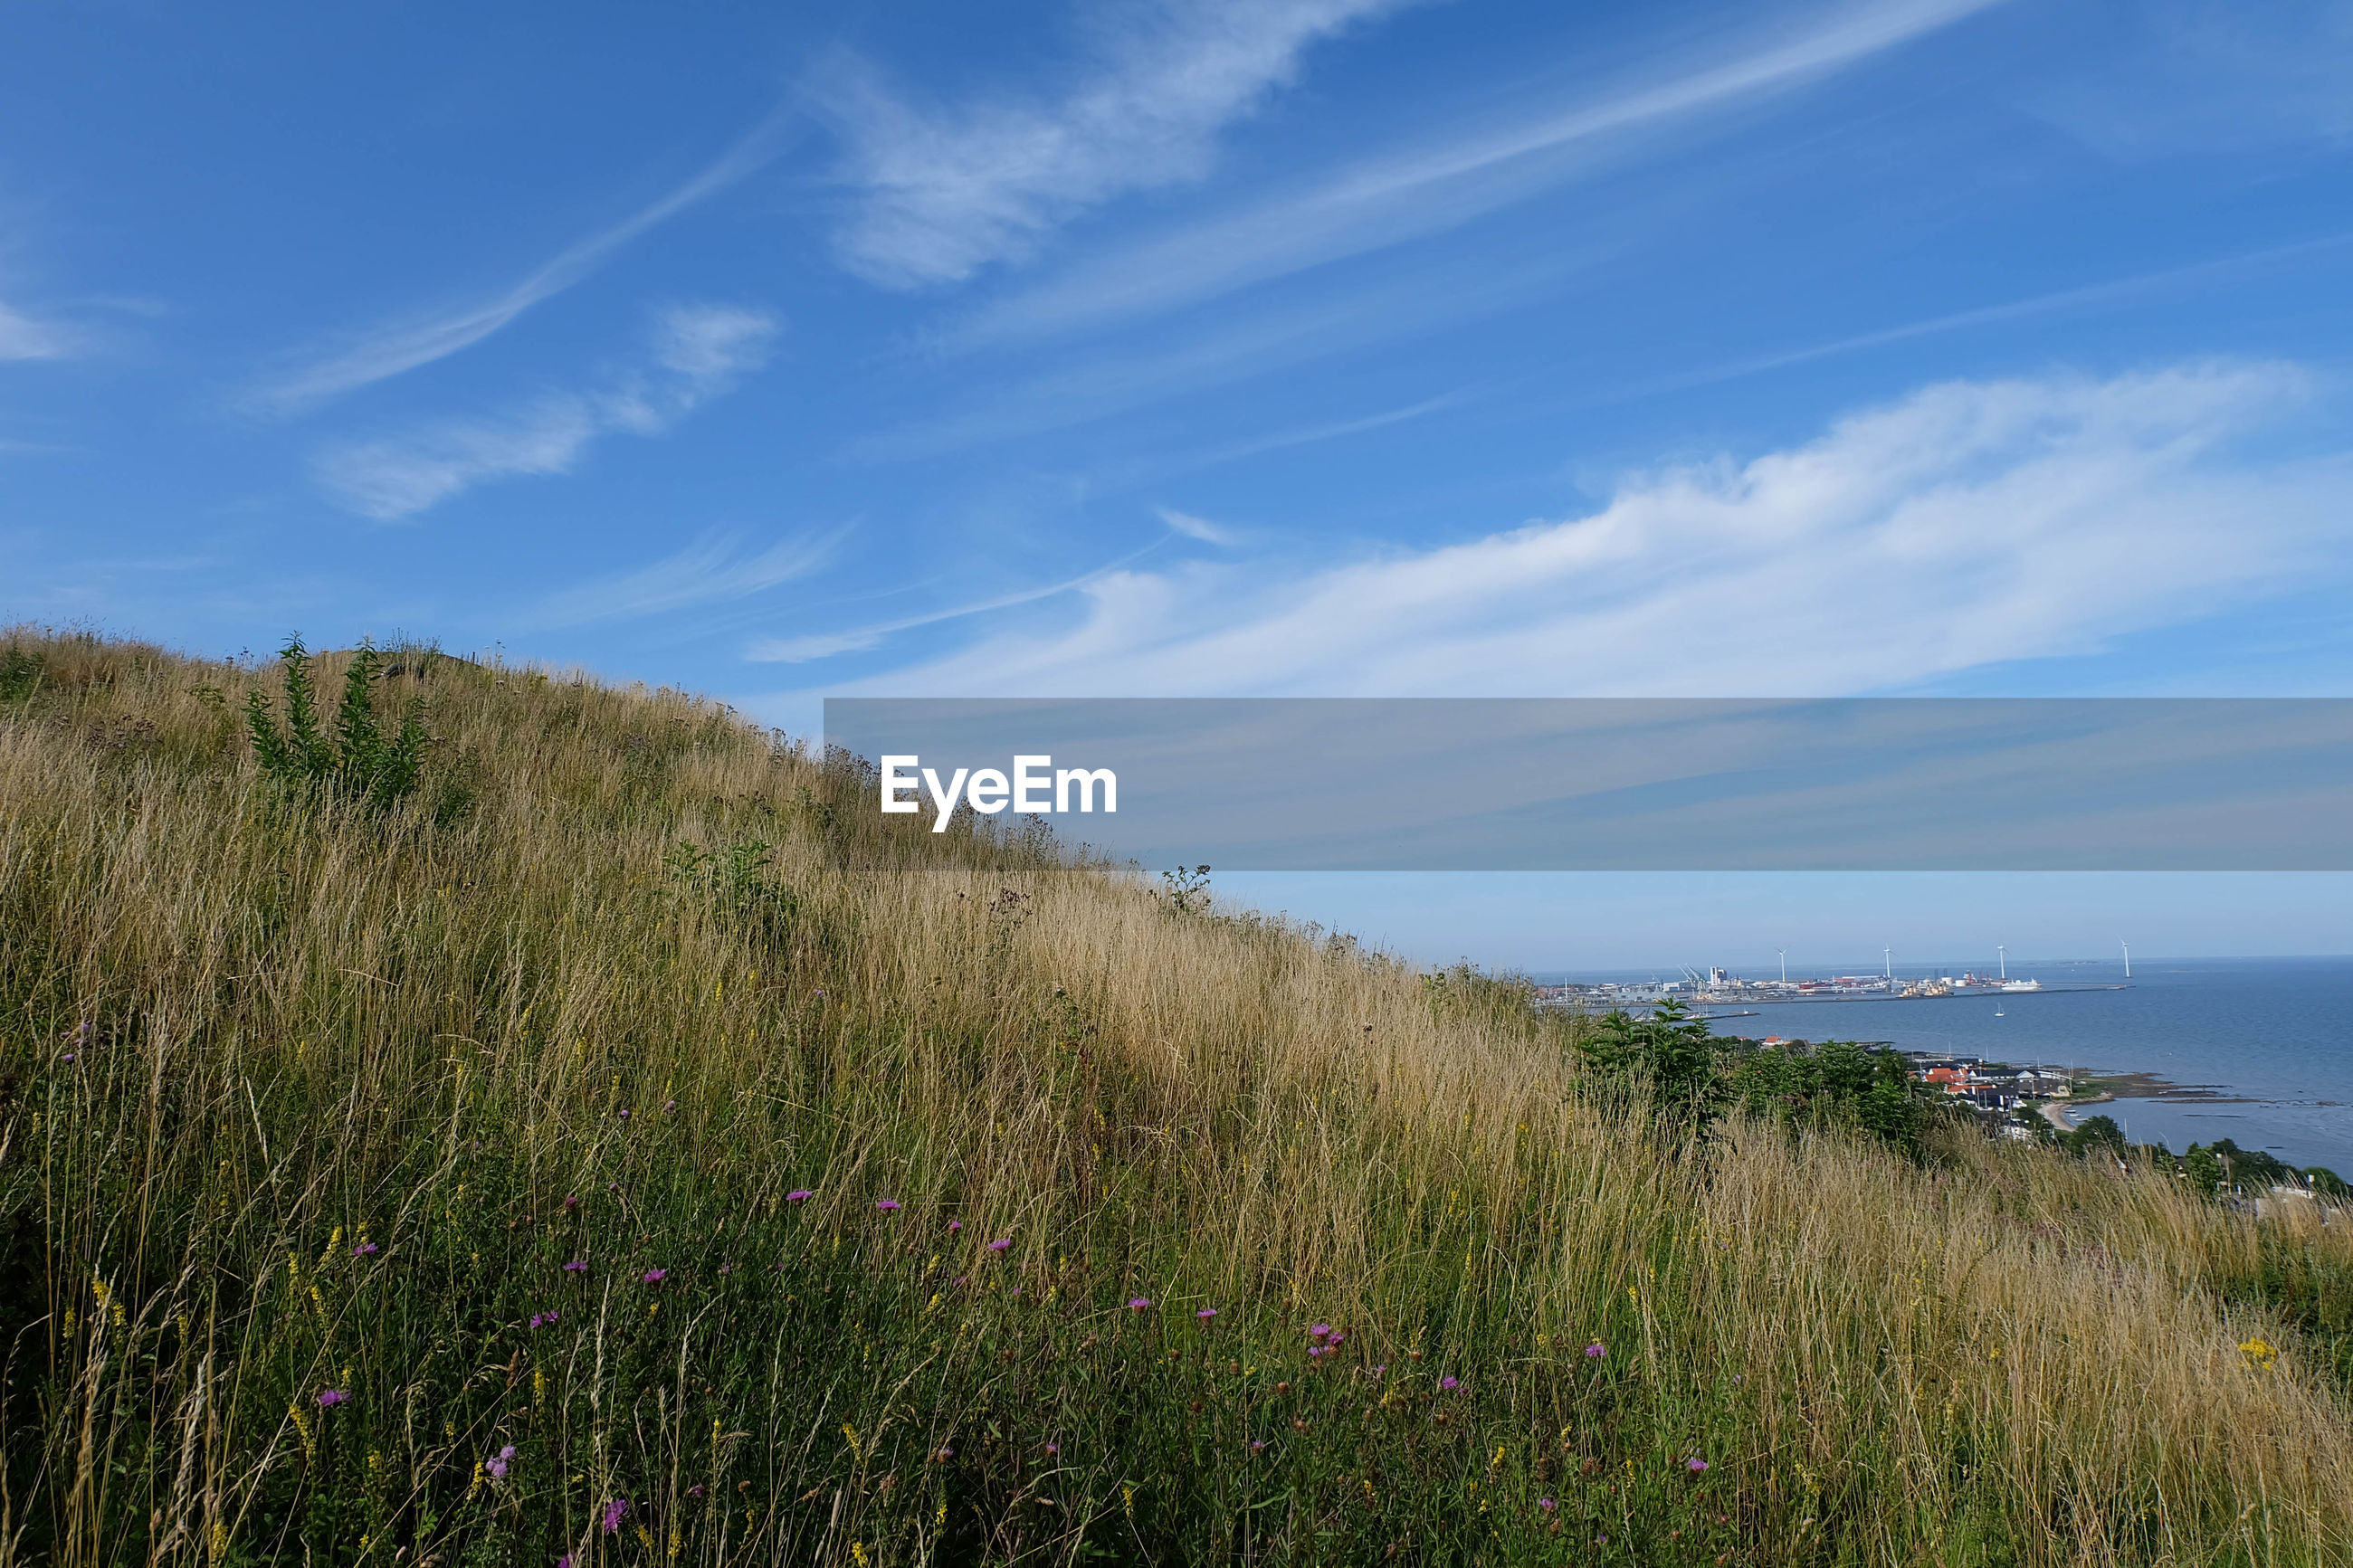 Scenic view of grassy hill by sea against blue sky